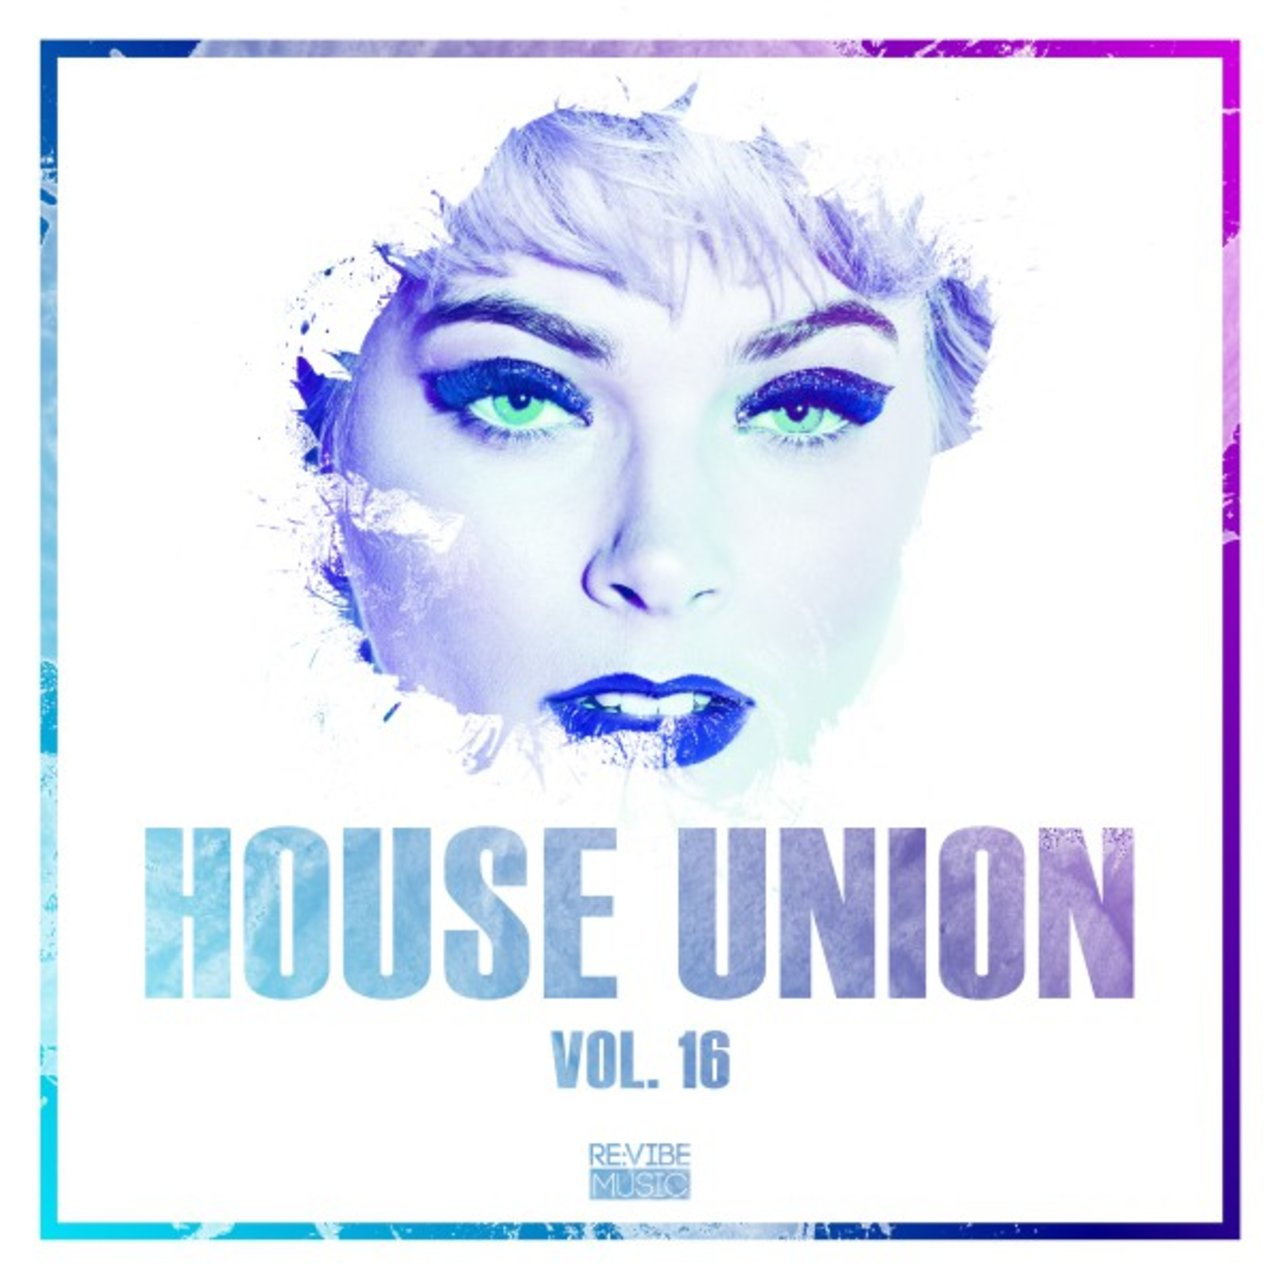 House Union, Vol. 16